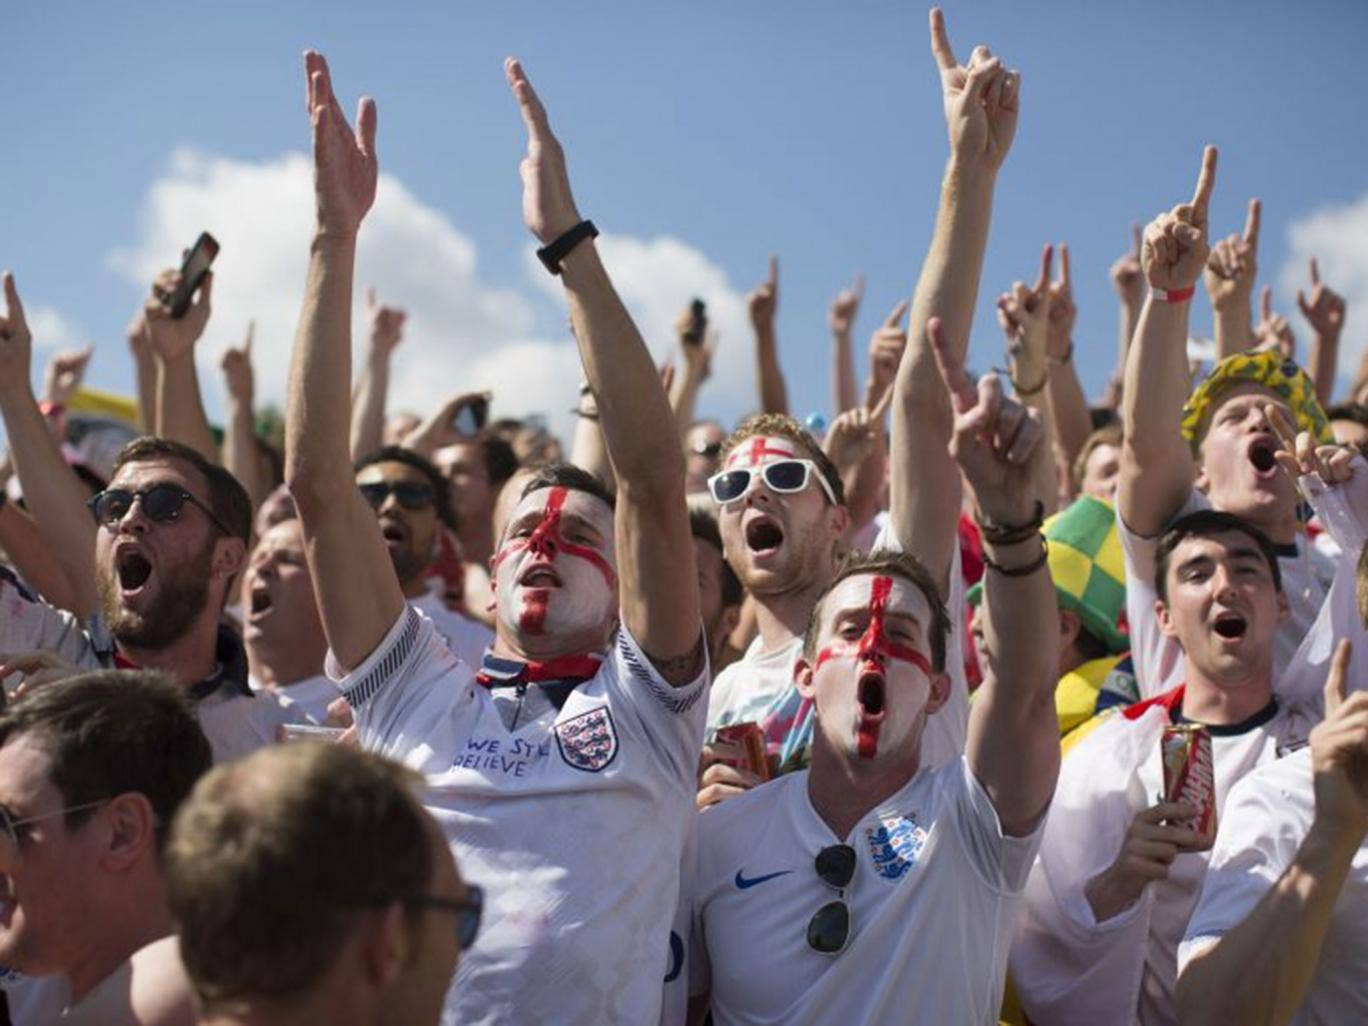 England fans remain in good spirits, even after a terminal 0-0 draw against Costa Rica